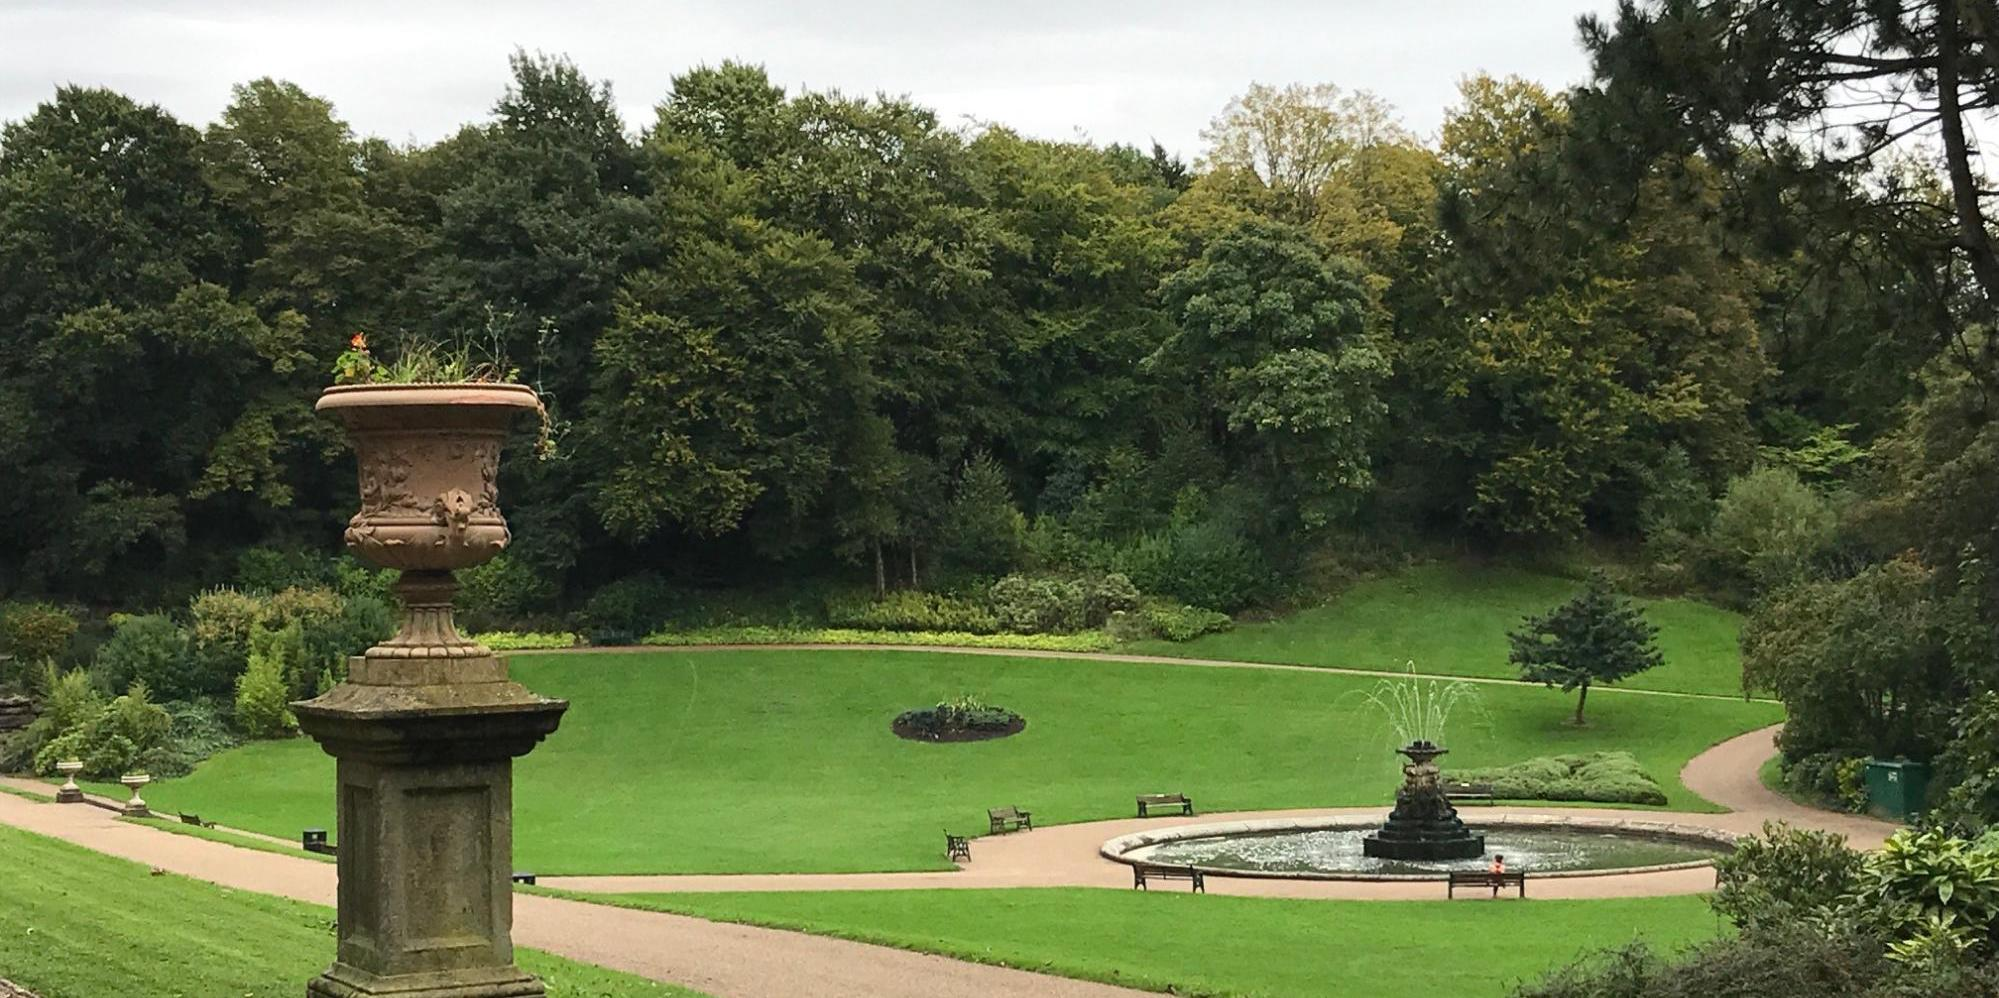 Preston Park and Water Fountain Surrounded By Trees